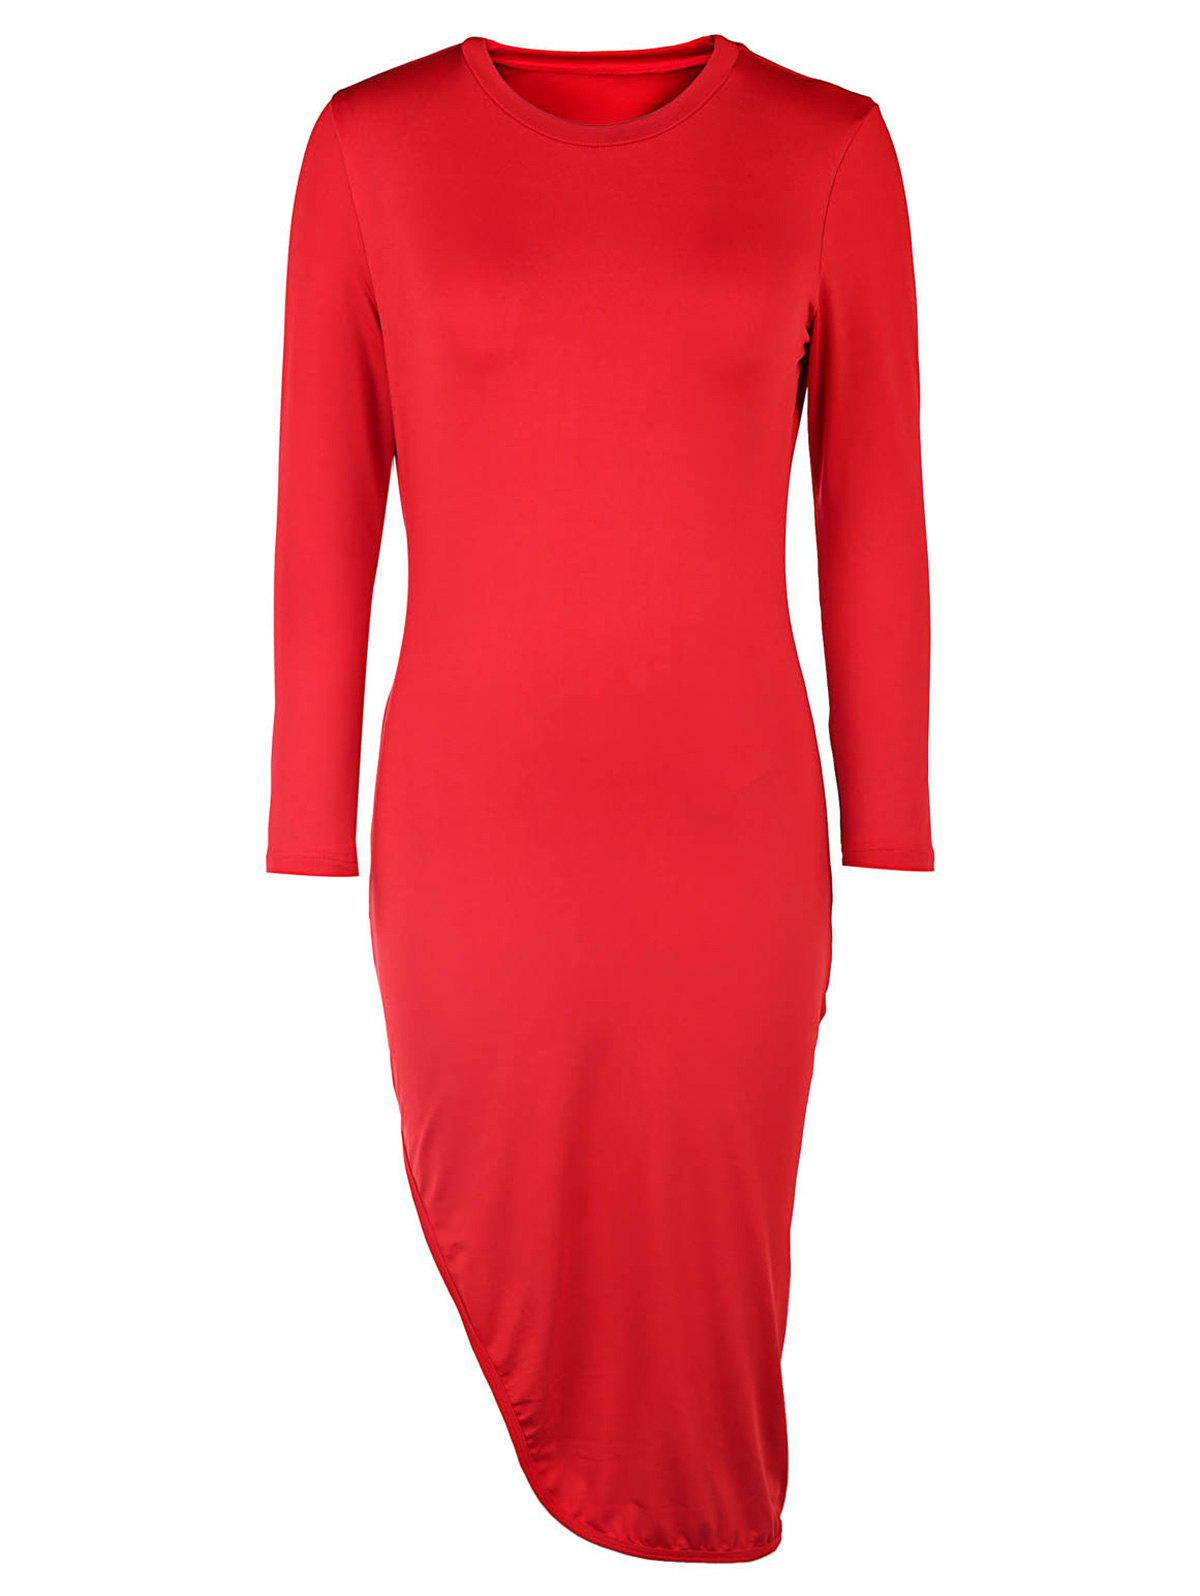 Sexy Round Neck 3/4 Sleeve High Slit Solid Color Women's Dress